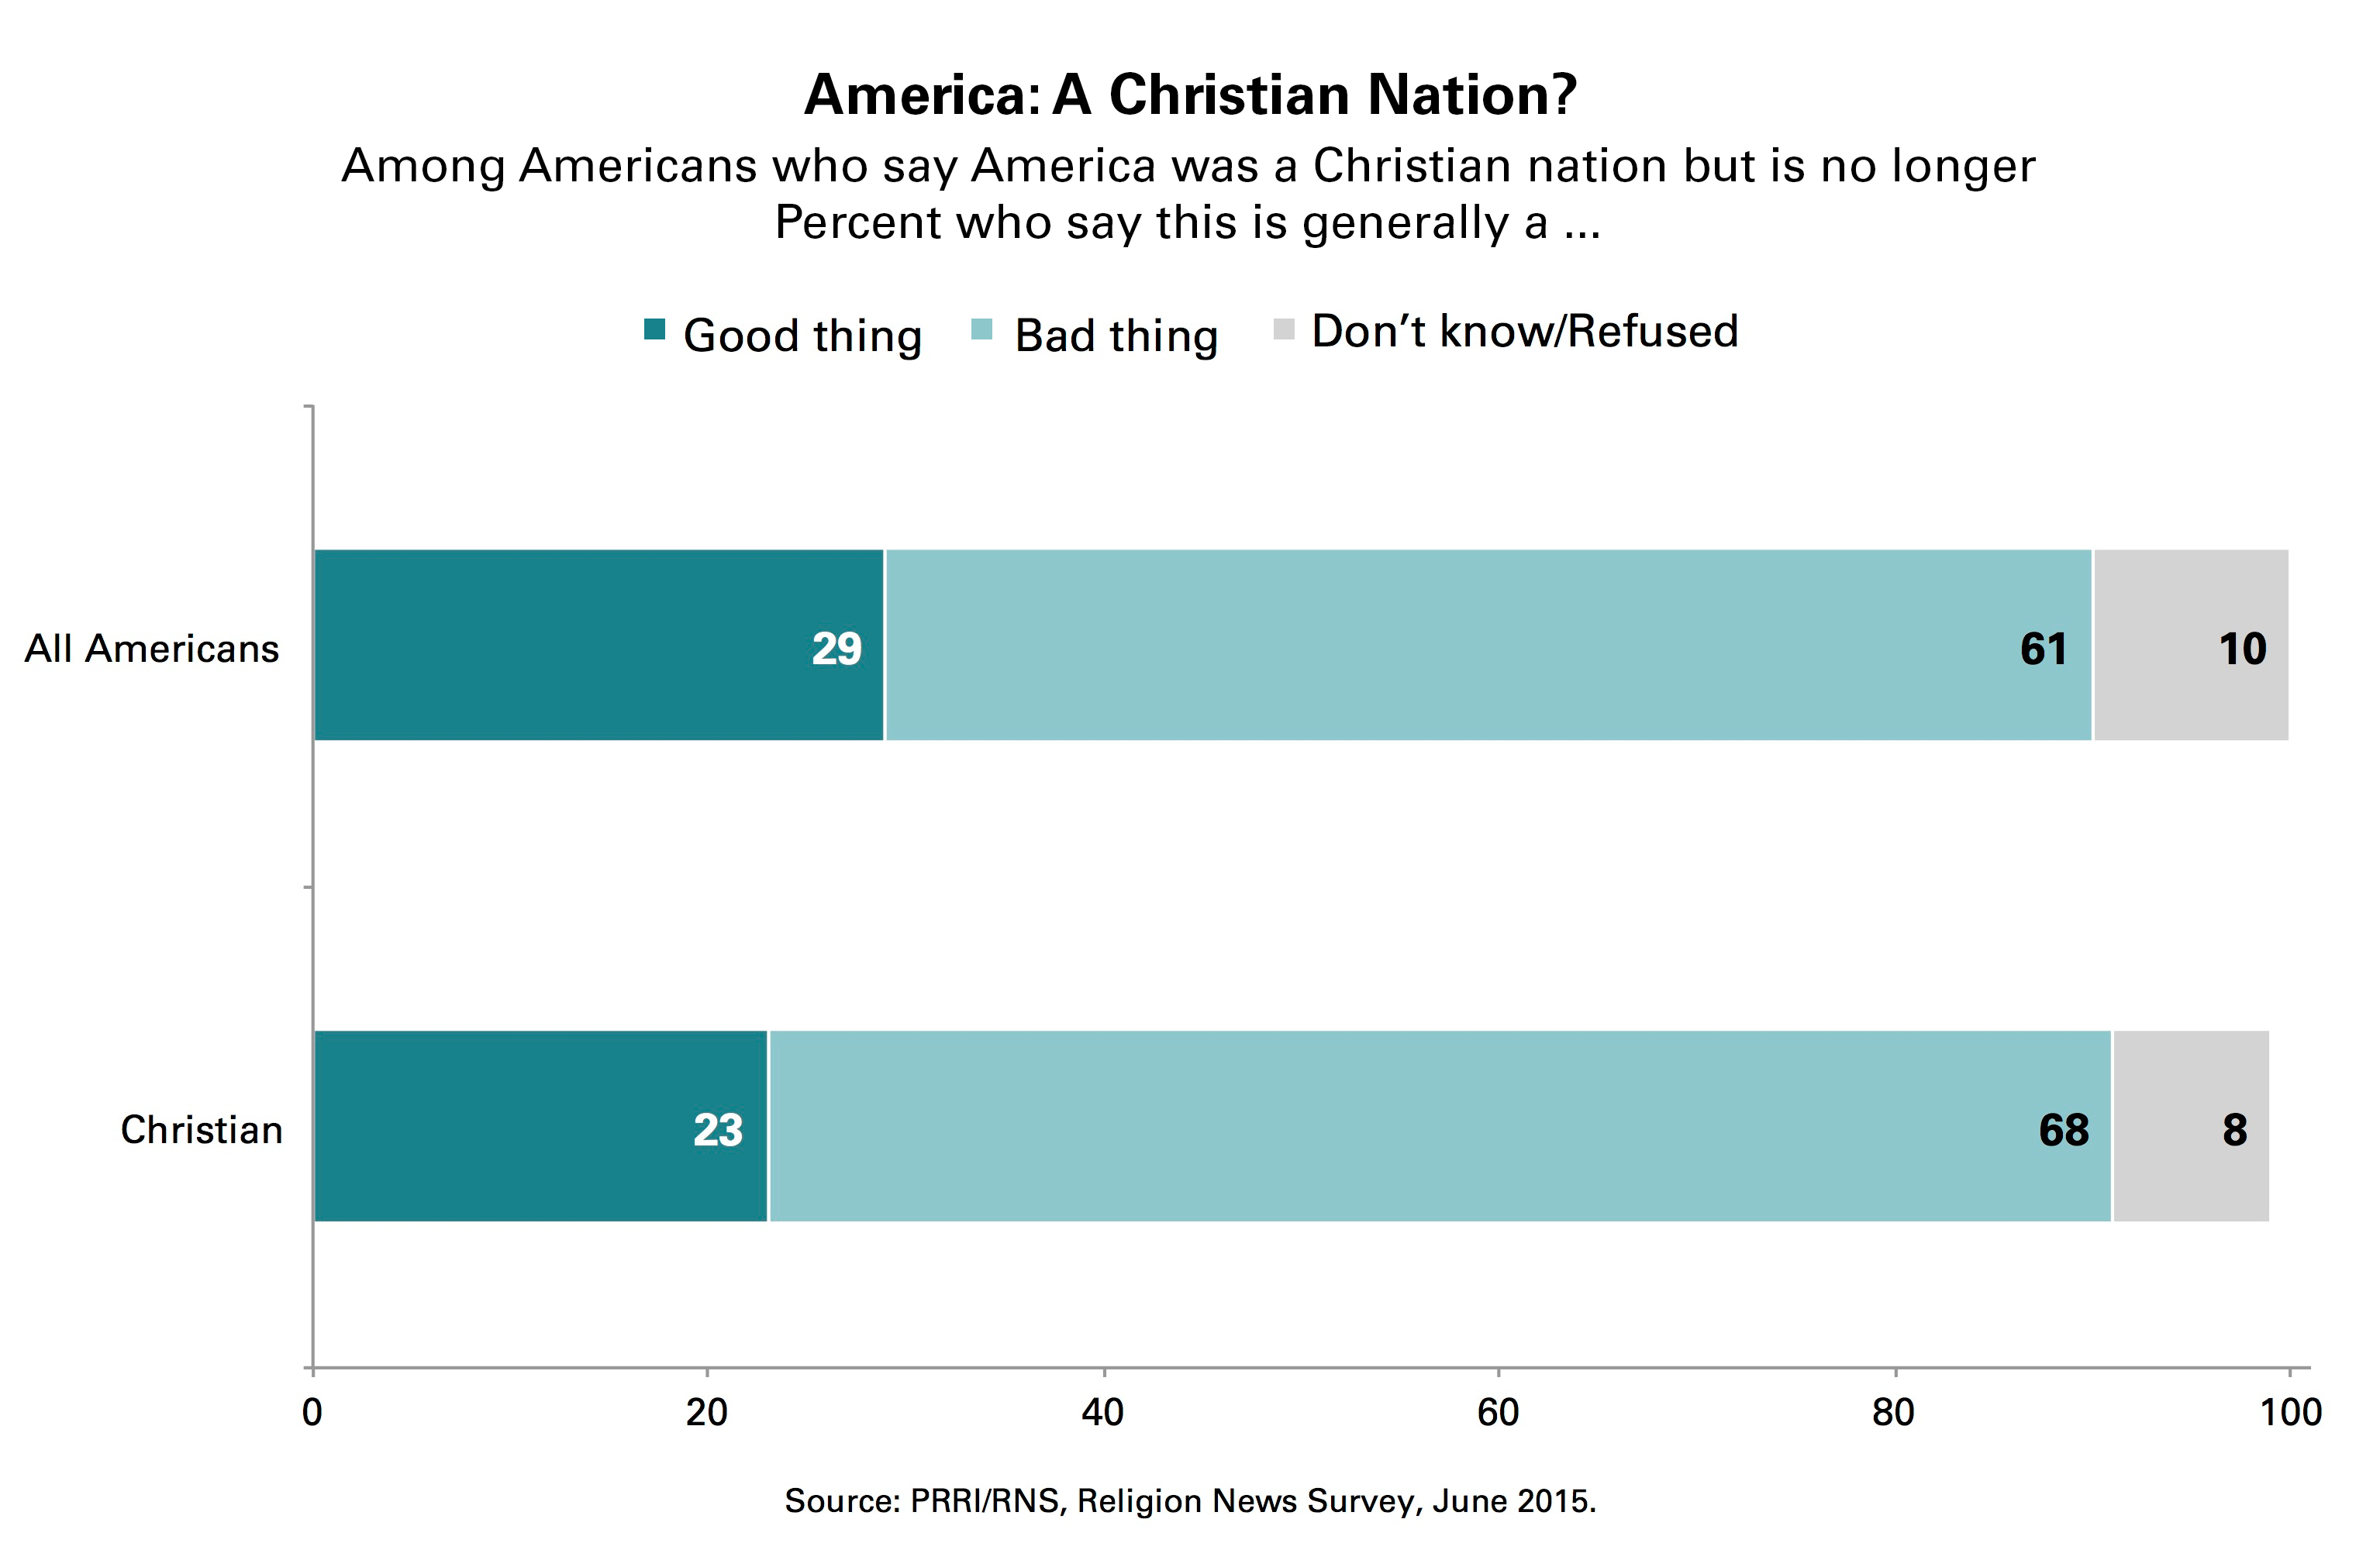 is america a christian nation America is indeed a christian nation and must continue to be a christian nation, legally and culturally, if we are to continue to be a free nation dedicated to individual liberty for all i believe america is at an important crossroads in 2013.